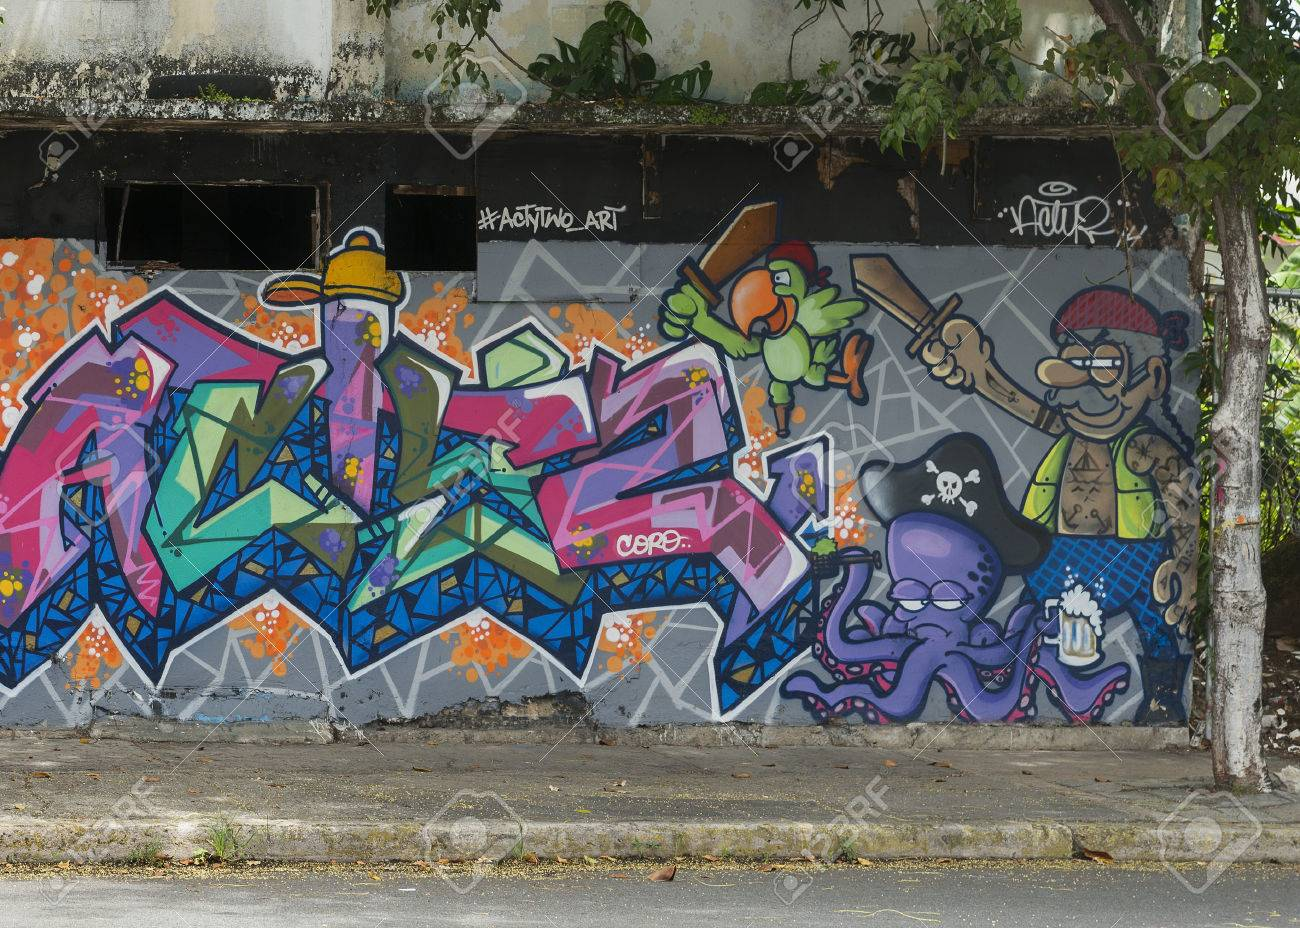 San juan puerto rico march 13 2015 graffiti in tras talleres neighborhood very sharp image of a group of cartoonish pirates including parot and